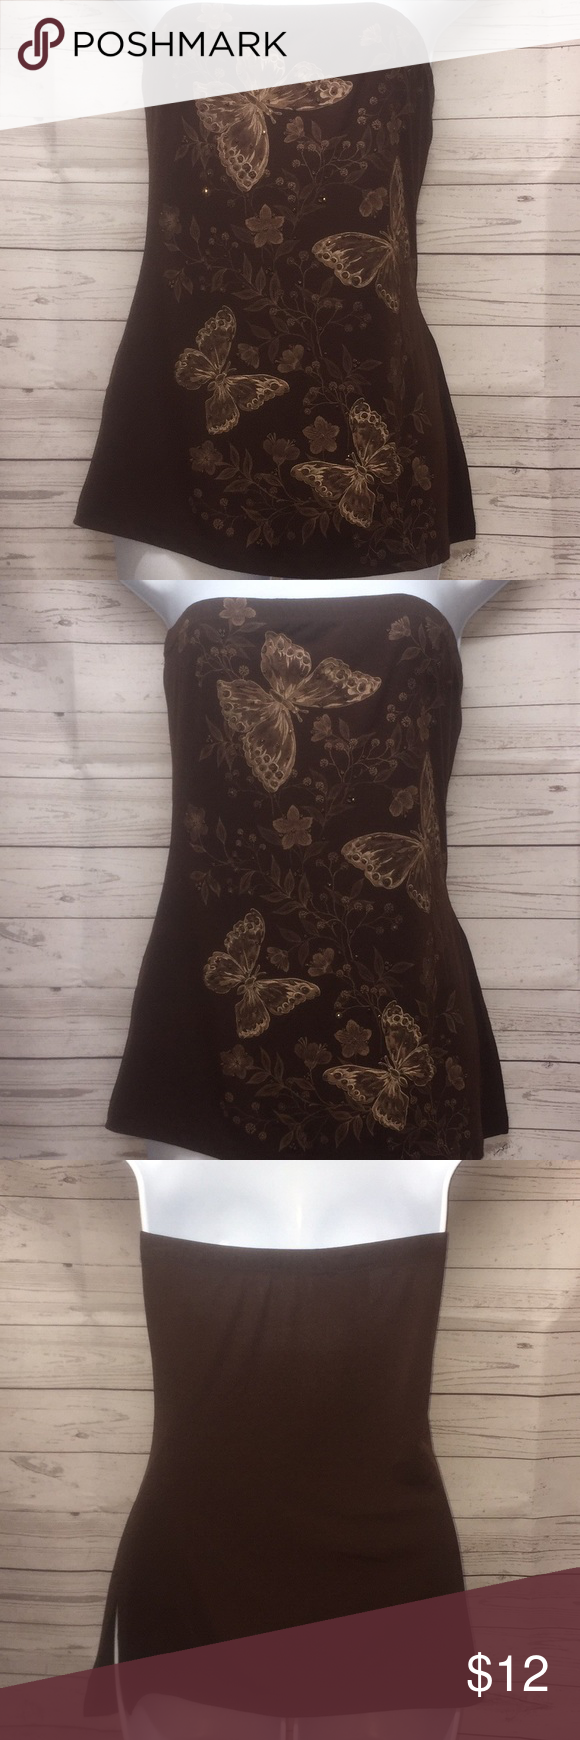 LIPSTICK D'AMORE Brown Butterfly Print Tube Top LIPSTICK D'AMORE Butterfly Print Bandeau Tube Top SIZE: M ( Medium ) COLOR: Brown/Butterfly Print 92% Polyester 8% Spandex  Great used condition! Lipstick D'Amore Tops